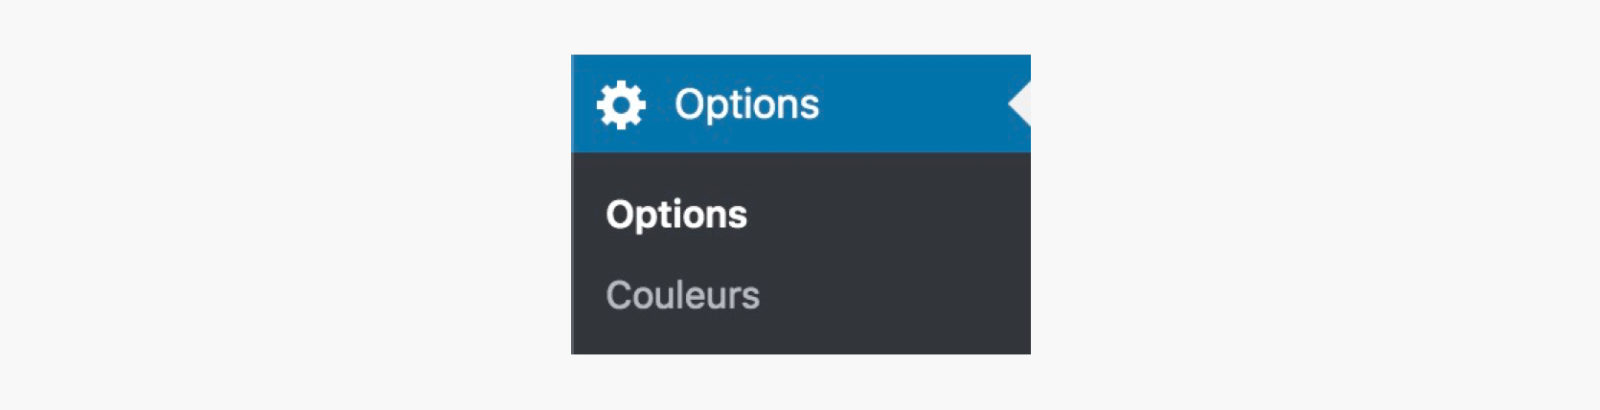 Le menu d'options dans WordPress